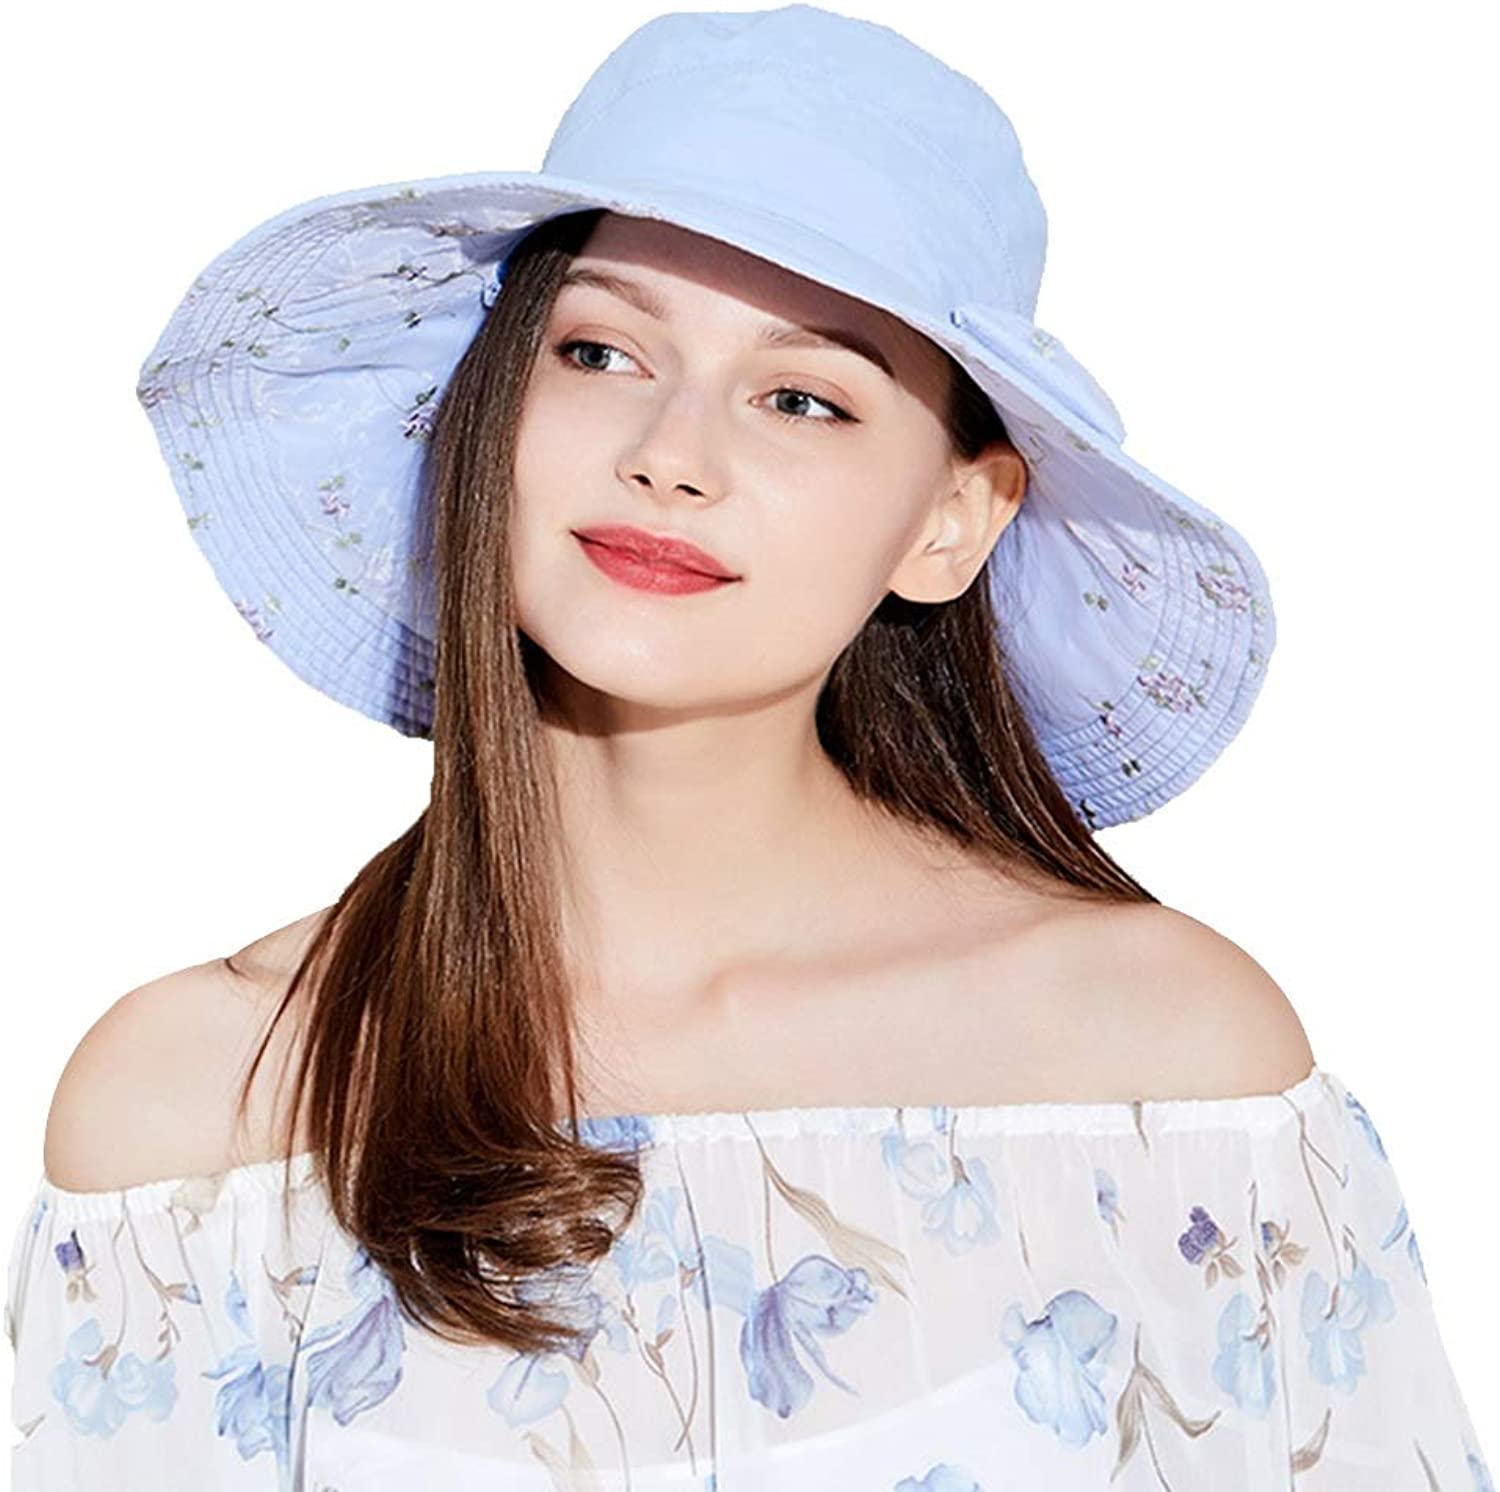 Hats Sun Visor Cool UV Predection Sun Visor Ladies Foldable Big Outdoor Electric Car Sun Quick Dry Sun Windproof Rope (color   Sky bluee, Size   57.5cm)